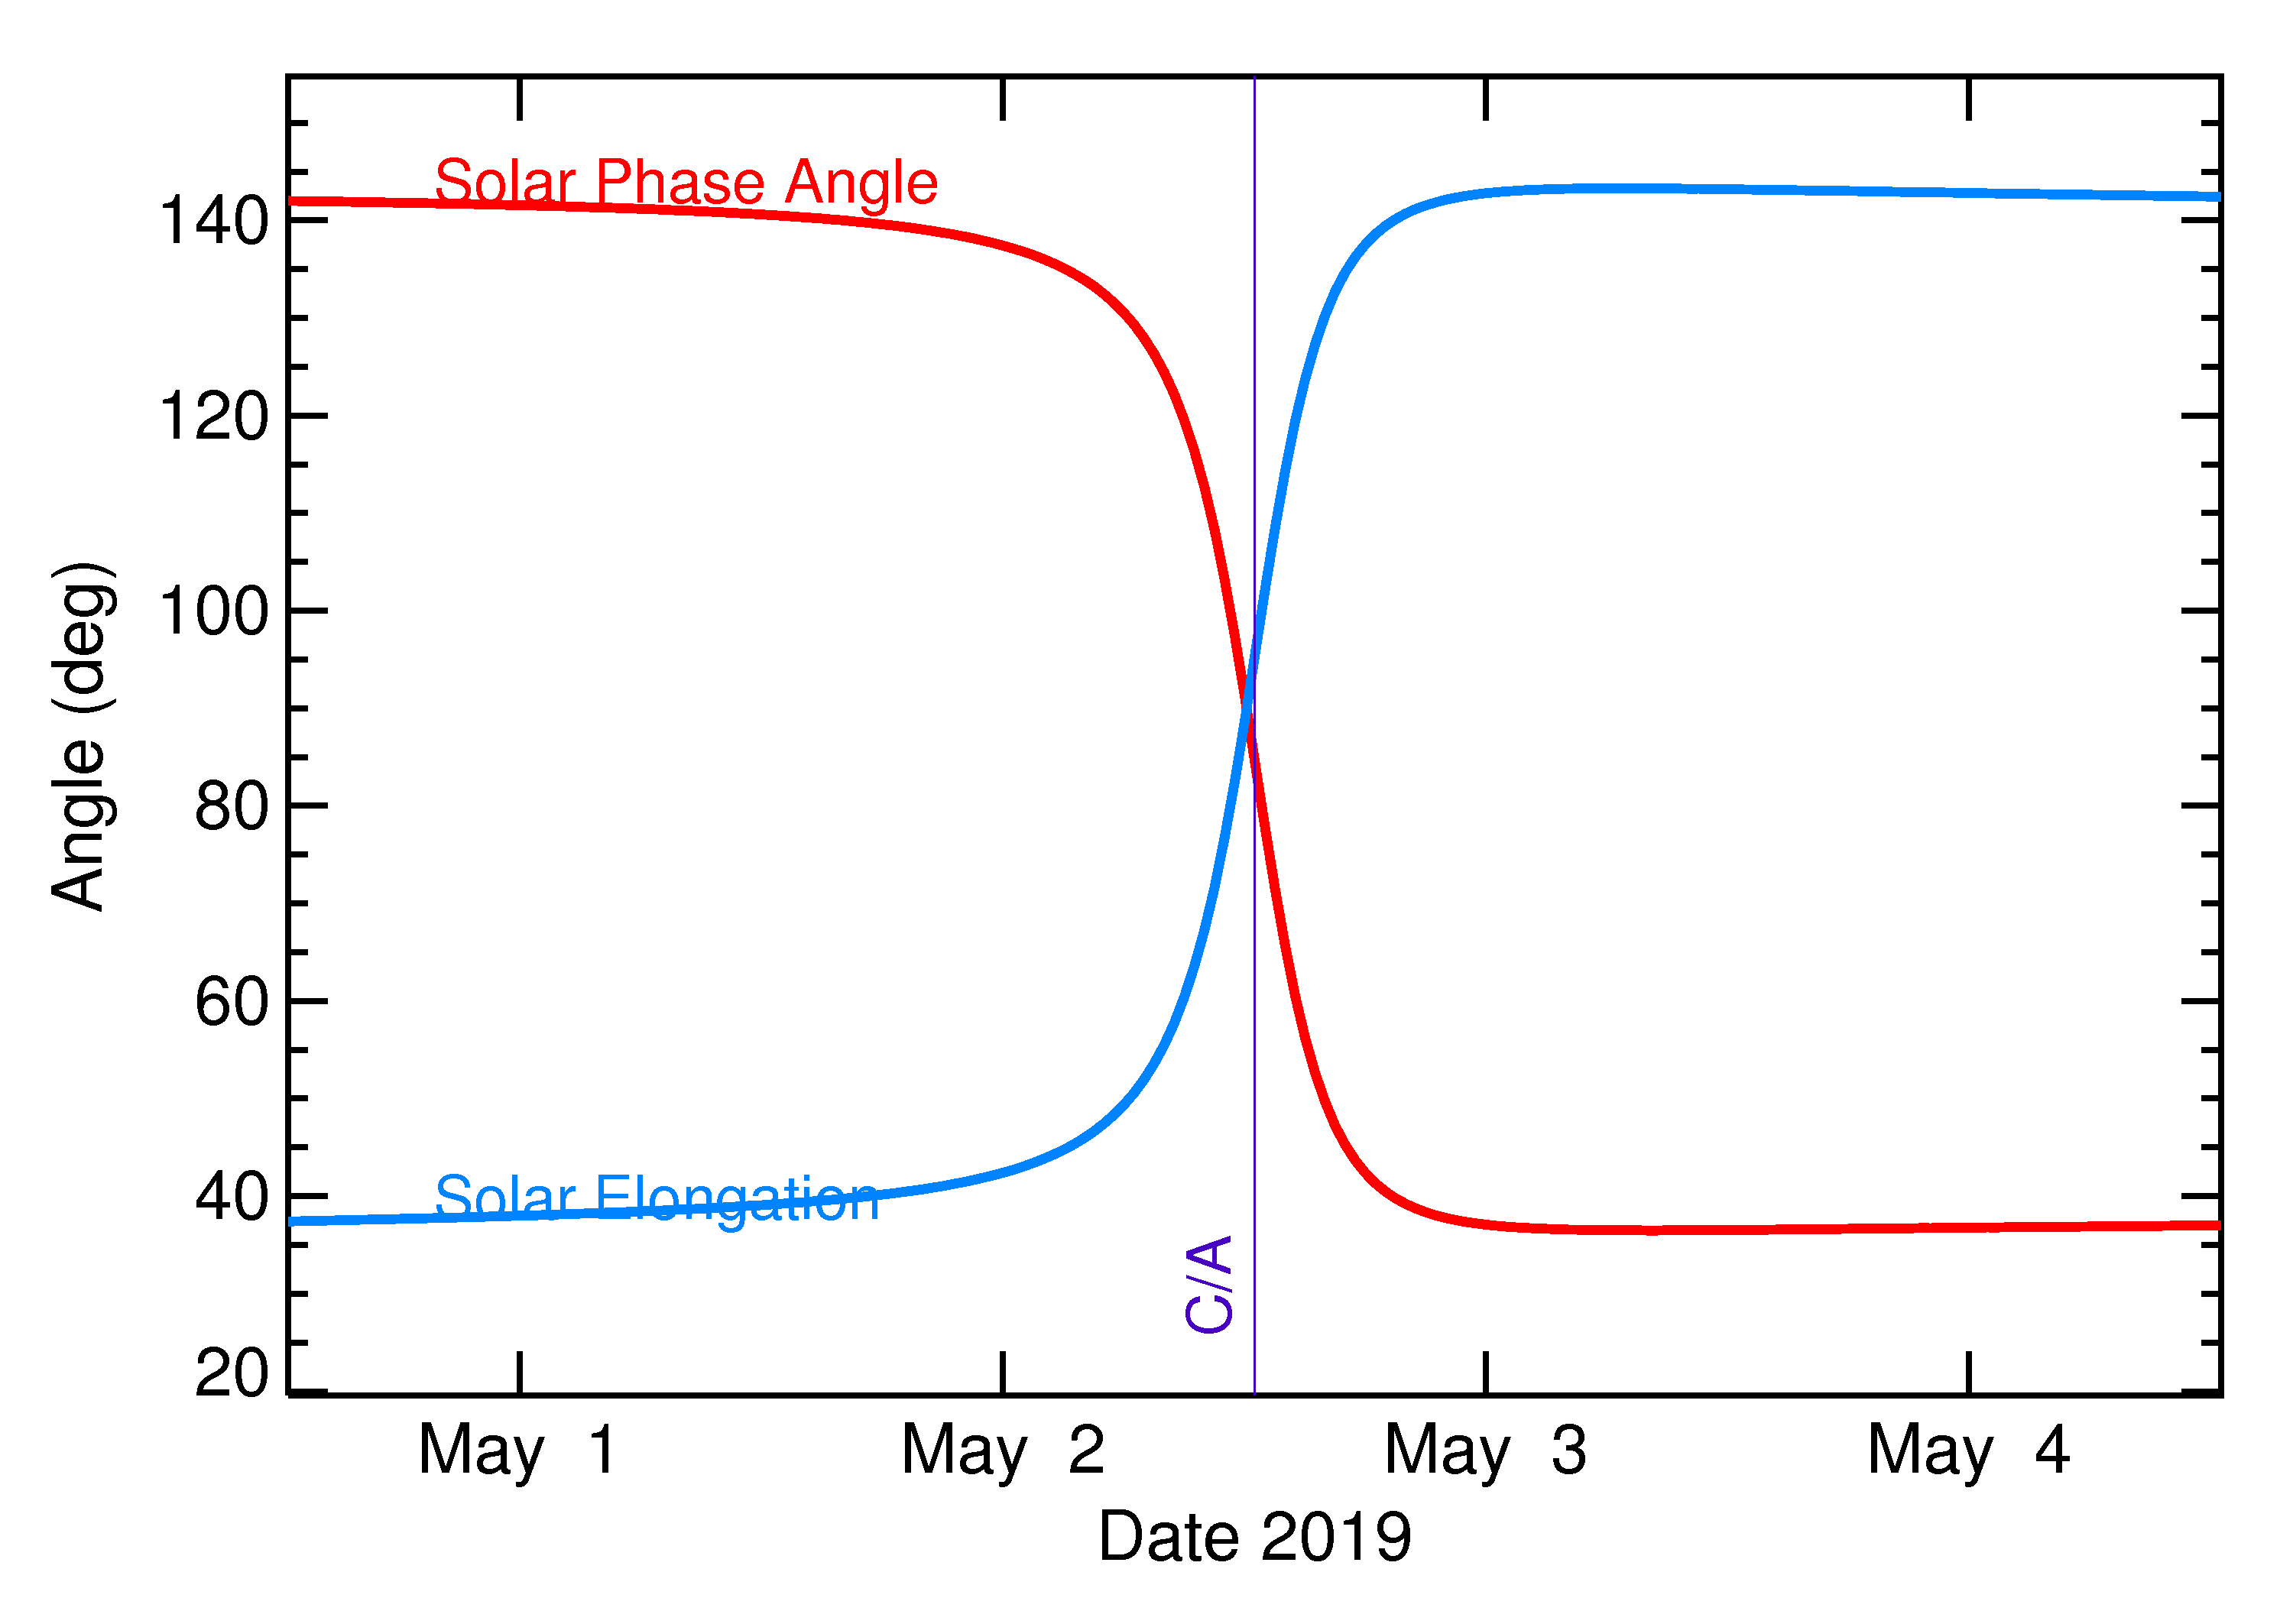 Solar Elongation and Solar Phase Angle of 2019 JX1 in the days around closest approach